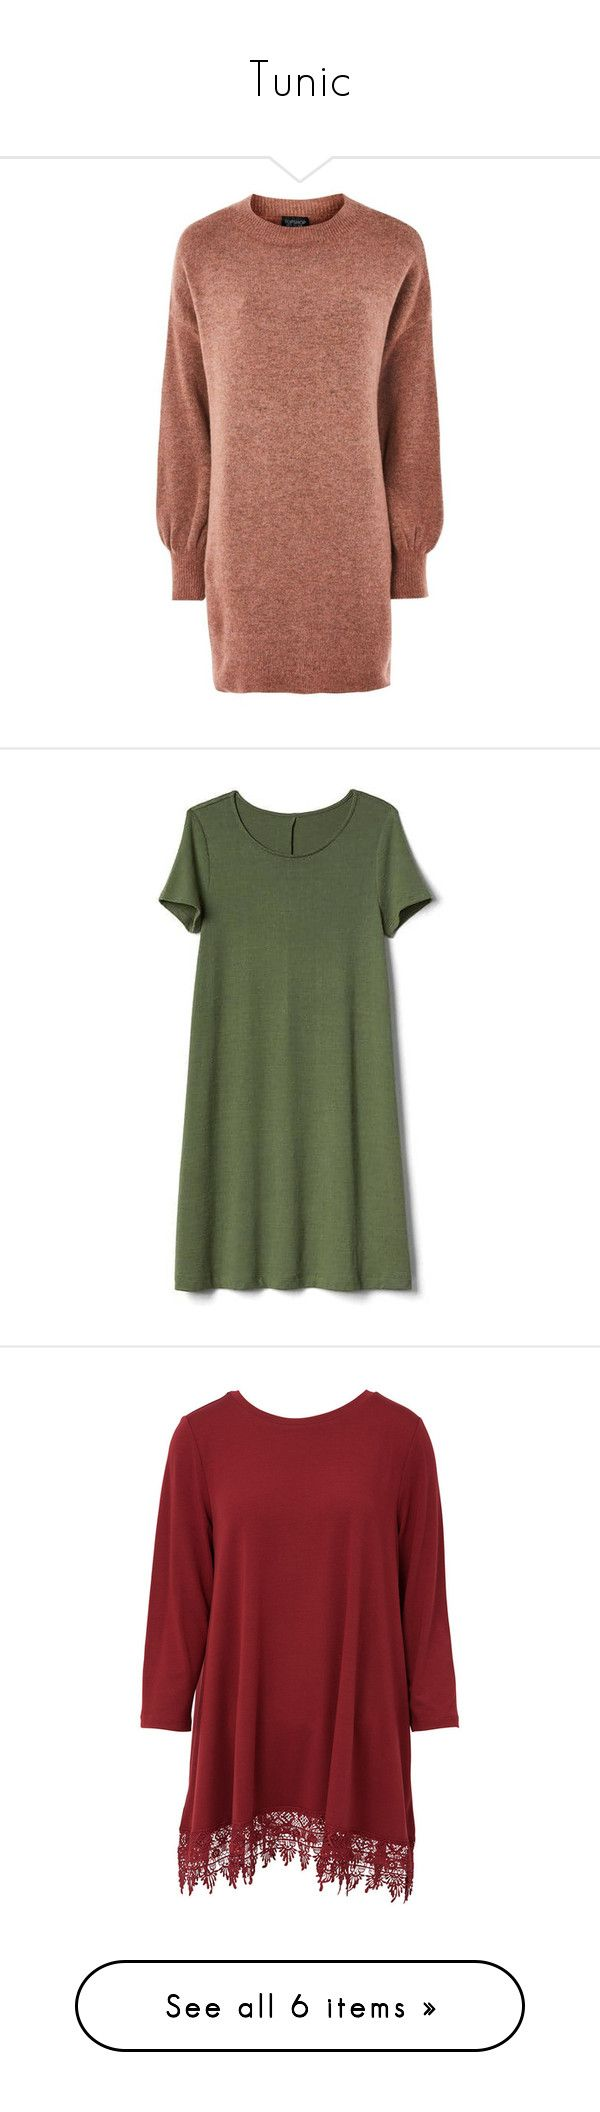 """""""Tunic"""" by lydpanth-th-hen ❤ liked on Polyvore featuring dresses, beige sweater dress, slouchy sweater dress, slouchy dress, slouch dress, oversized sweater dress, tops, jungle green, tall and green dress"""